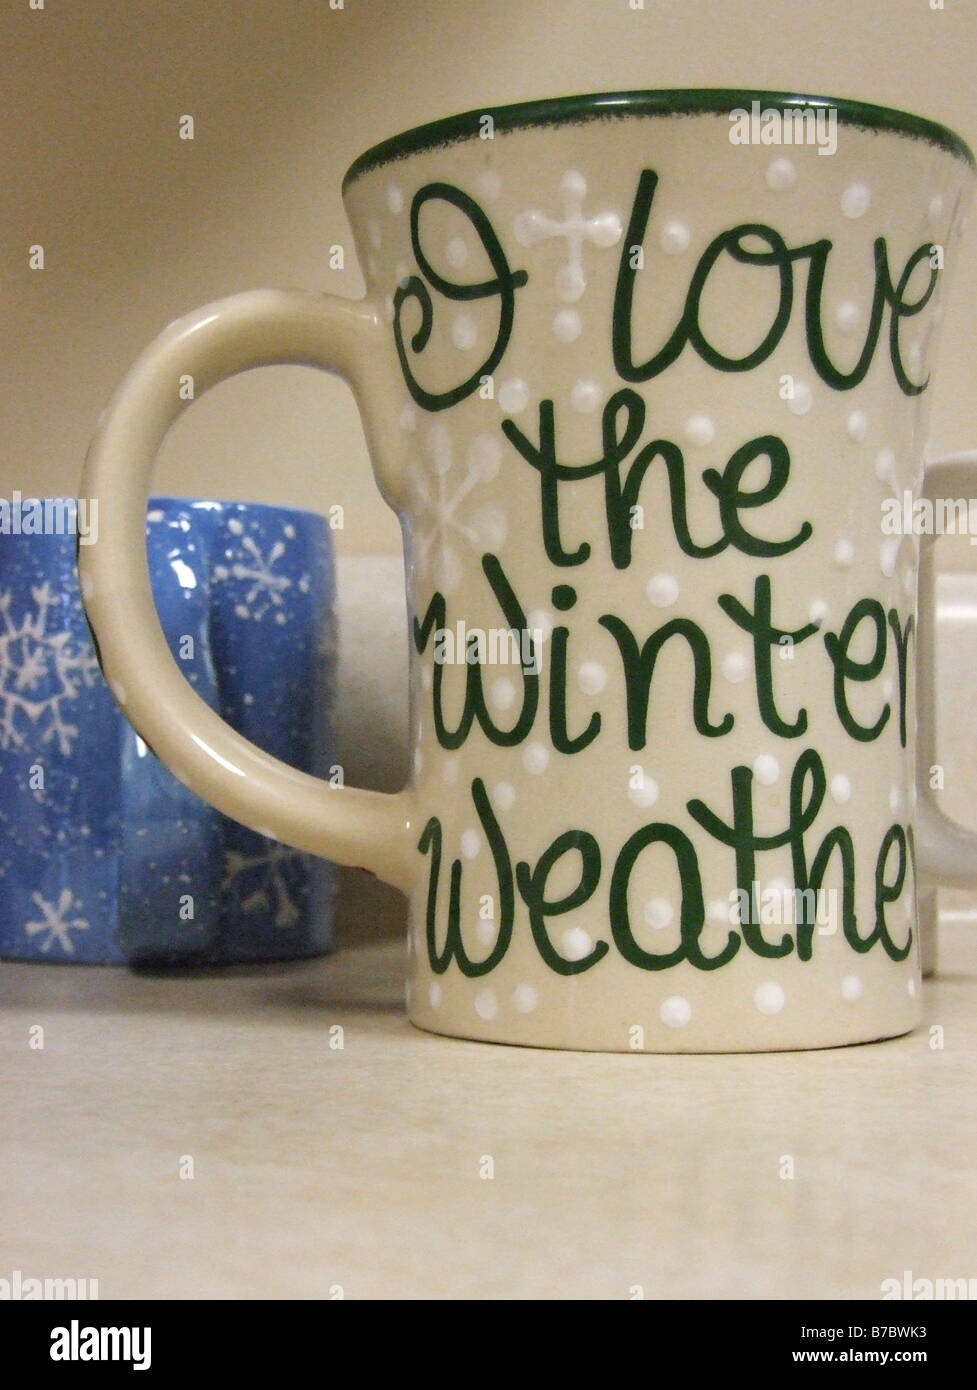 Coffee mug with a humerous statement about enjoying the winter weather - Stock Image